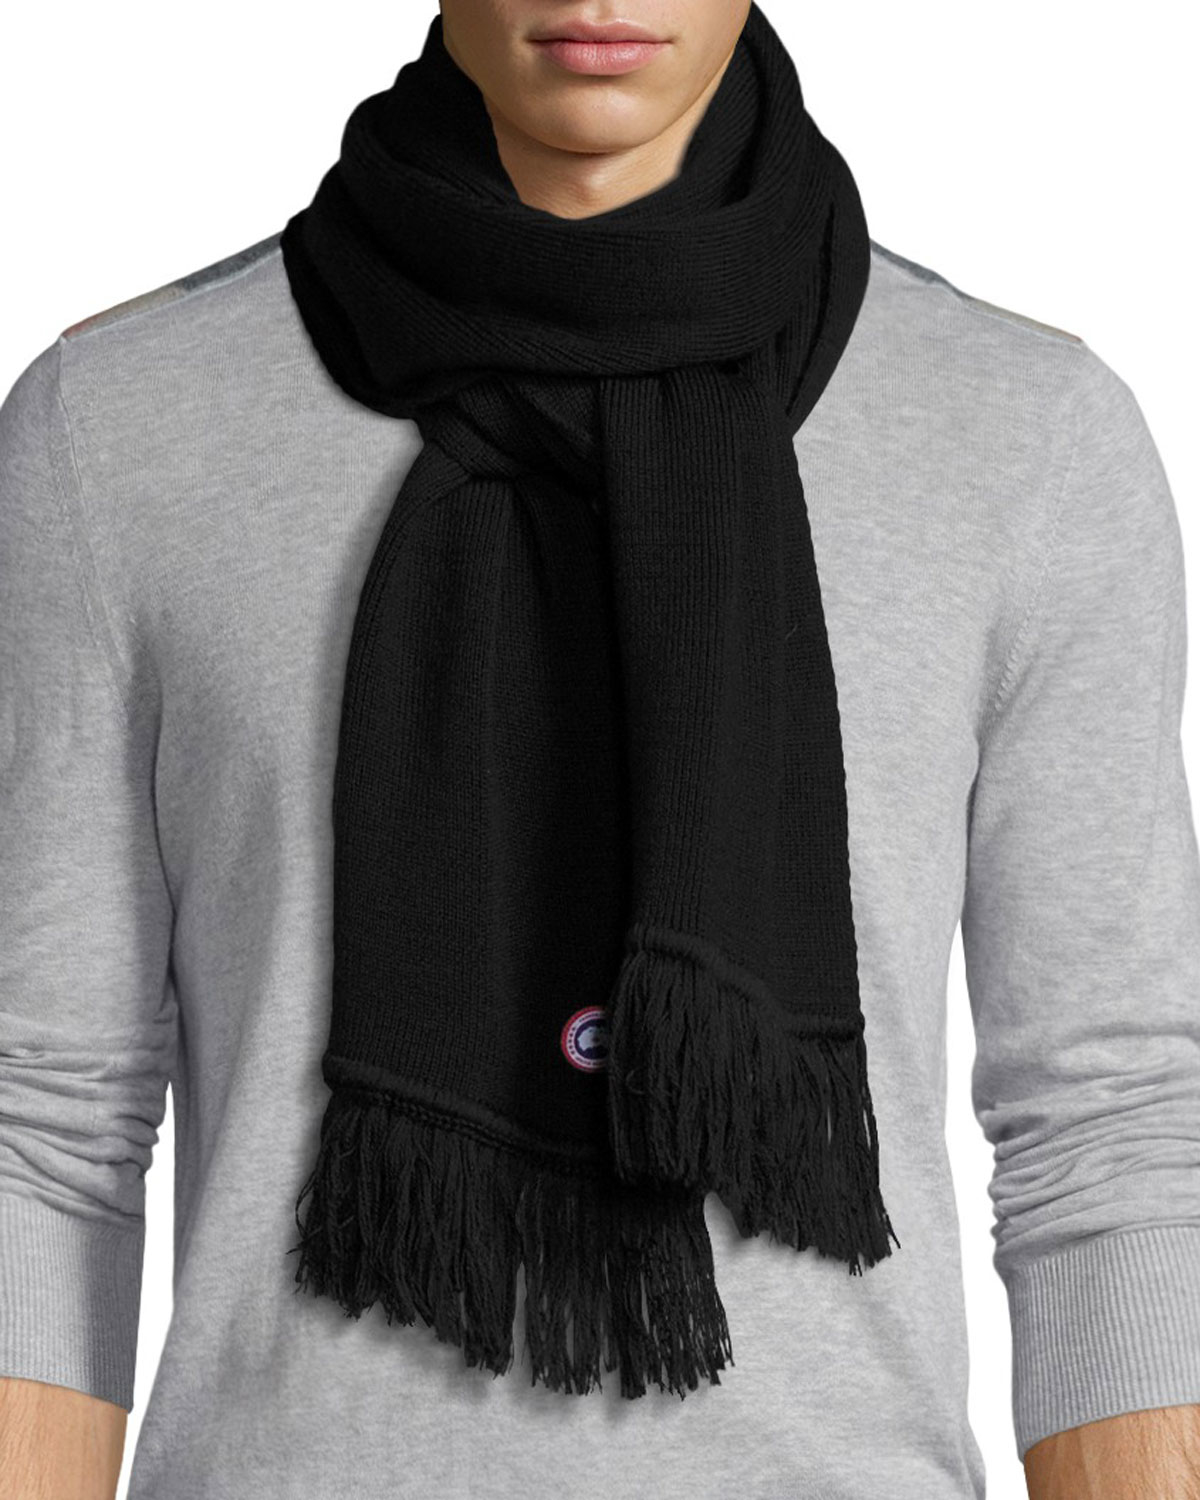 Canada Goose Men S Merino Wool Fringed Scarf In Blue For